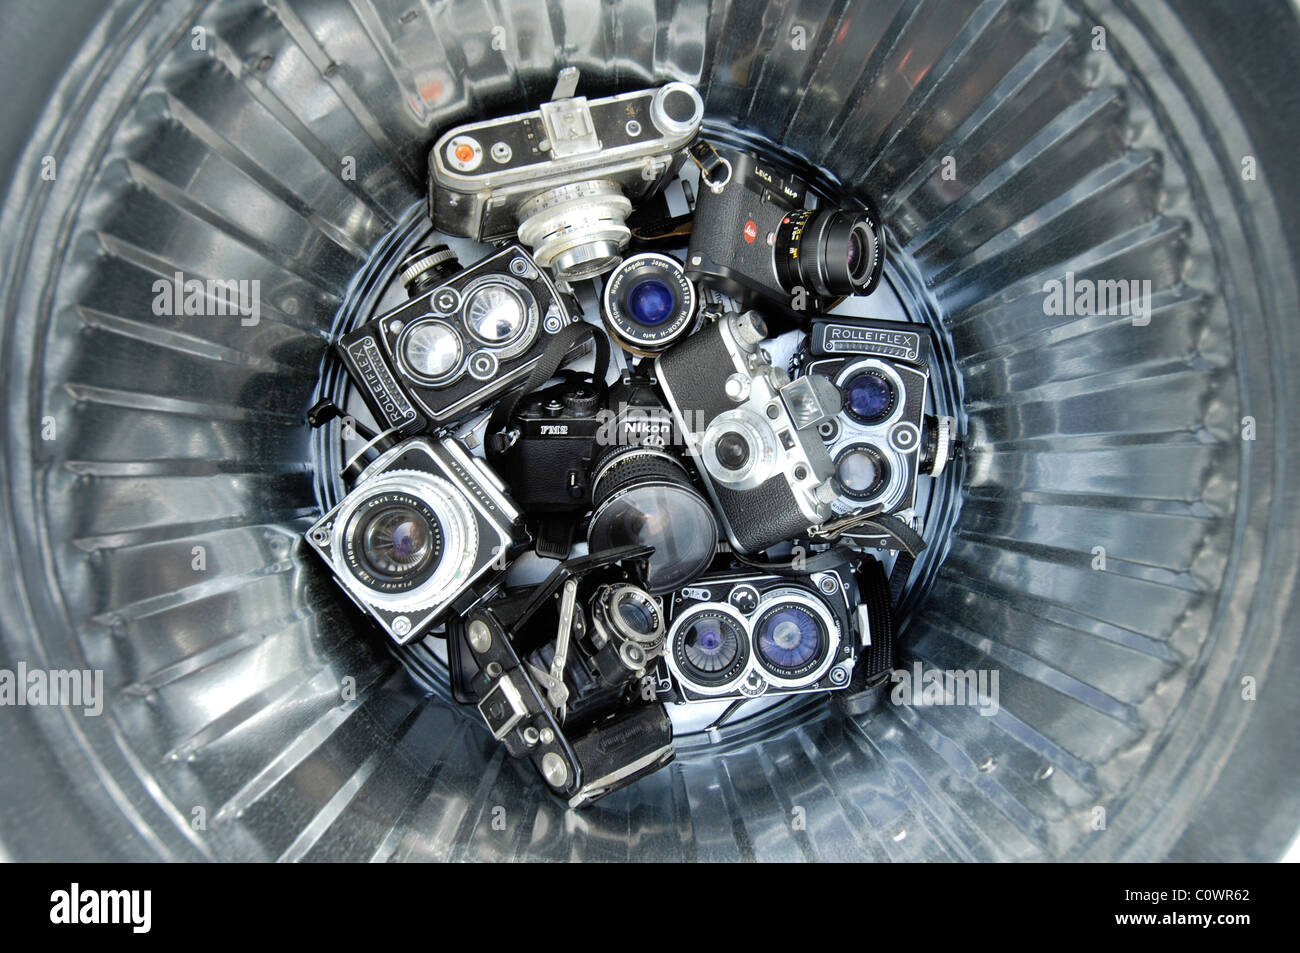 A dustbin of old pre-digital cameras including a Rolliflex, a Hasselblad a Leica and a Nikon - Stock Image